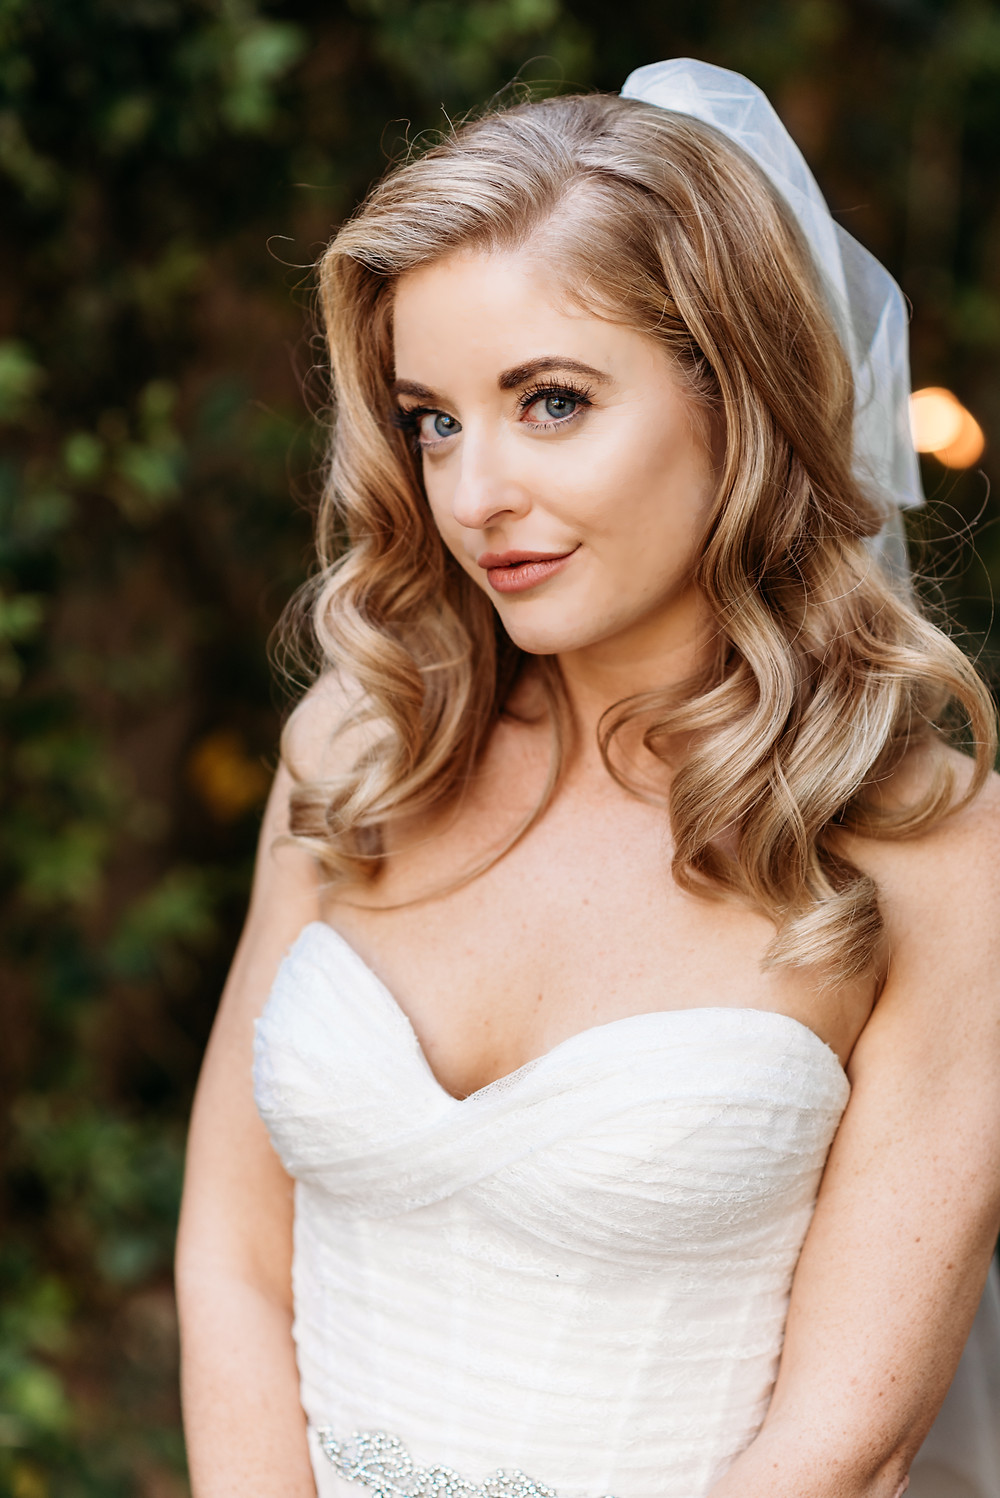 blonde hair blue eye bride looking at camera in her strapless wedding dress and veil